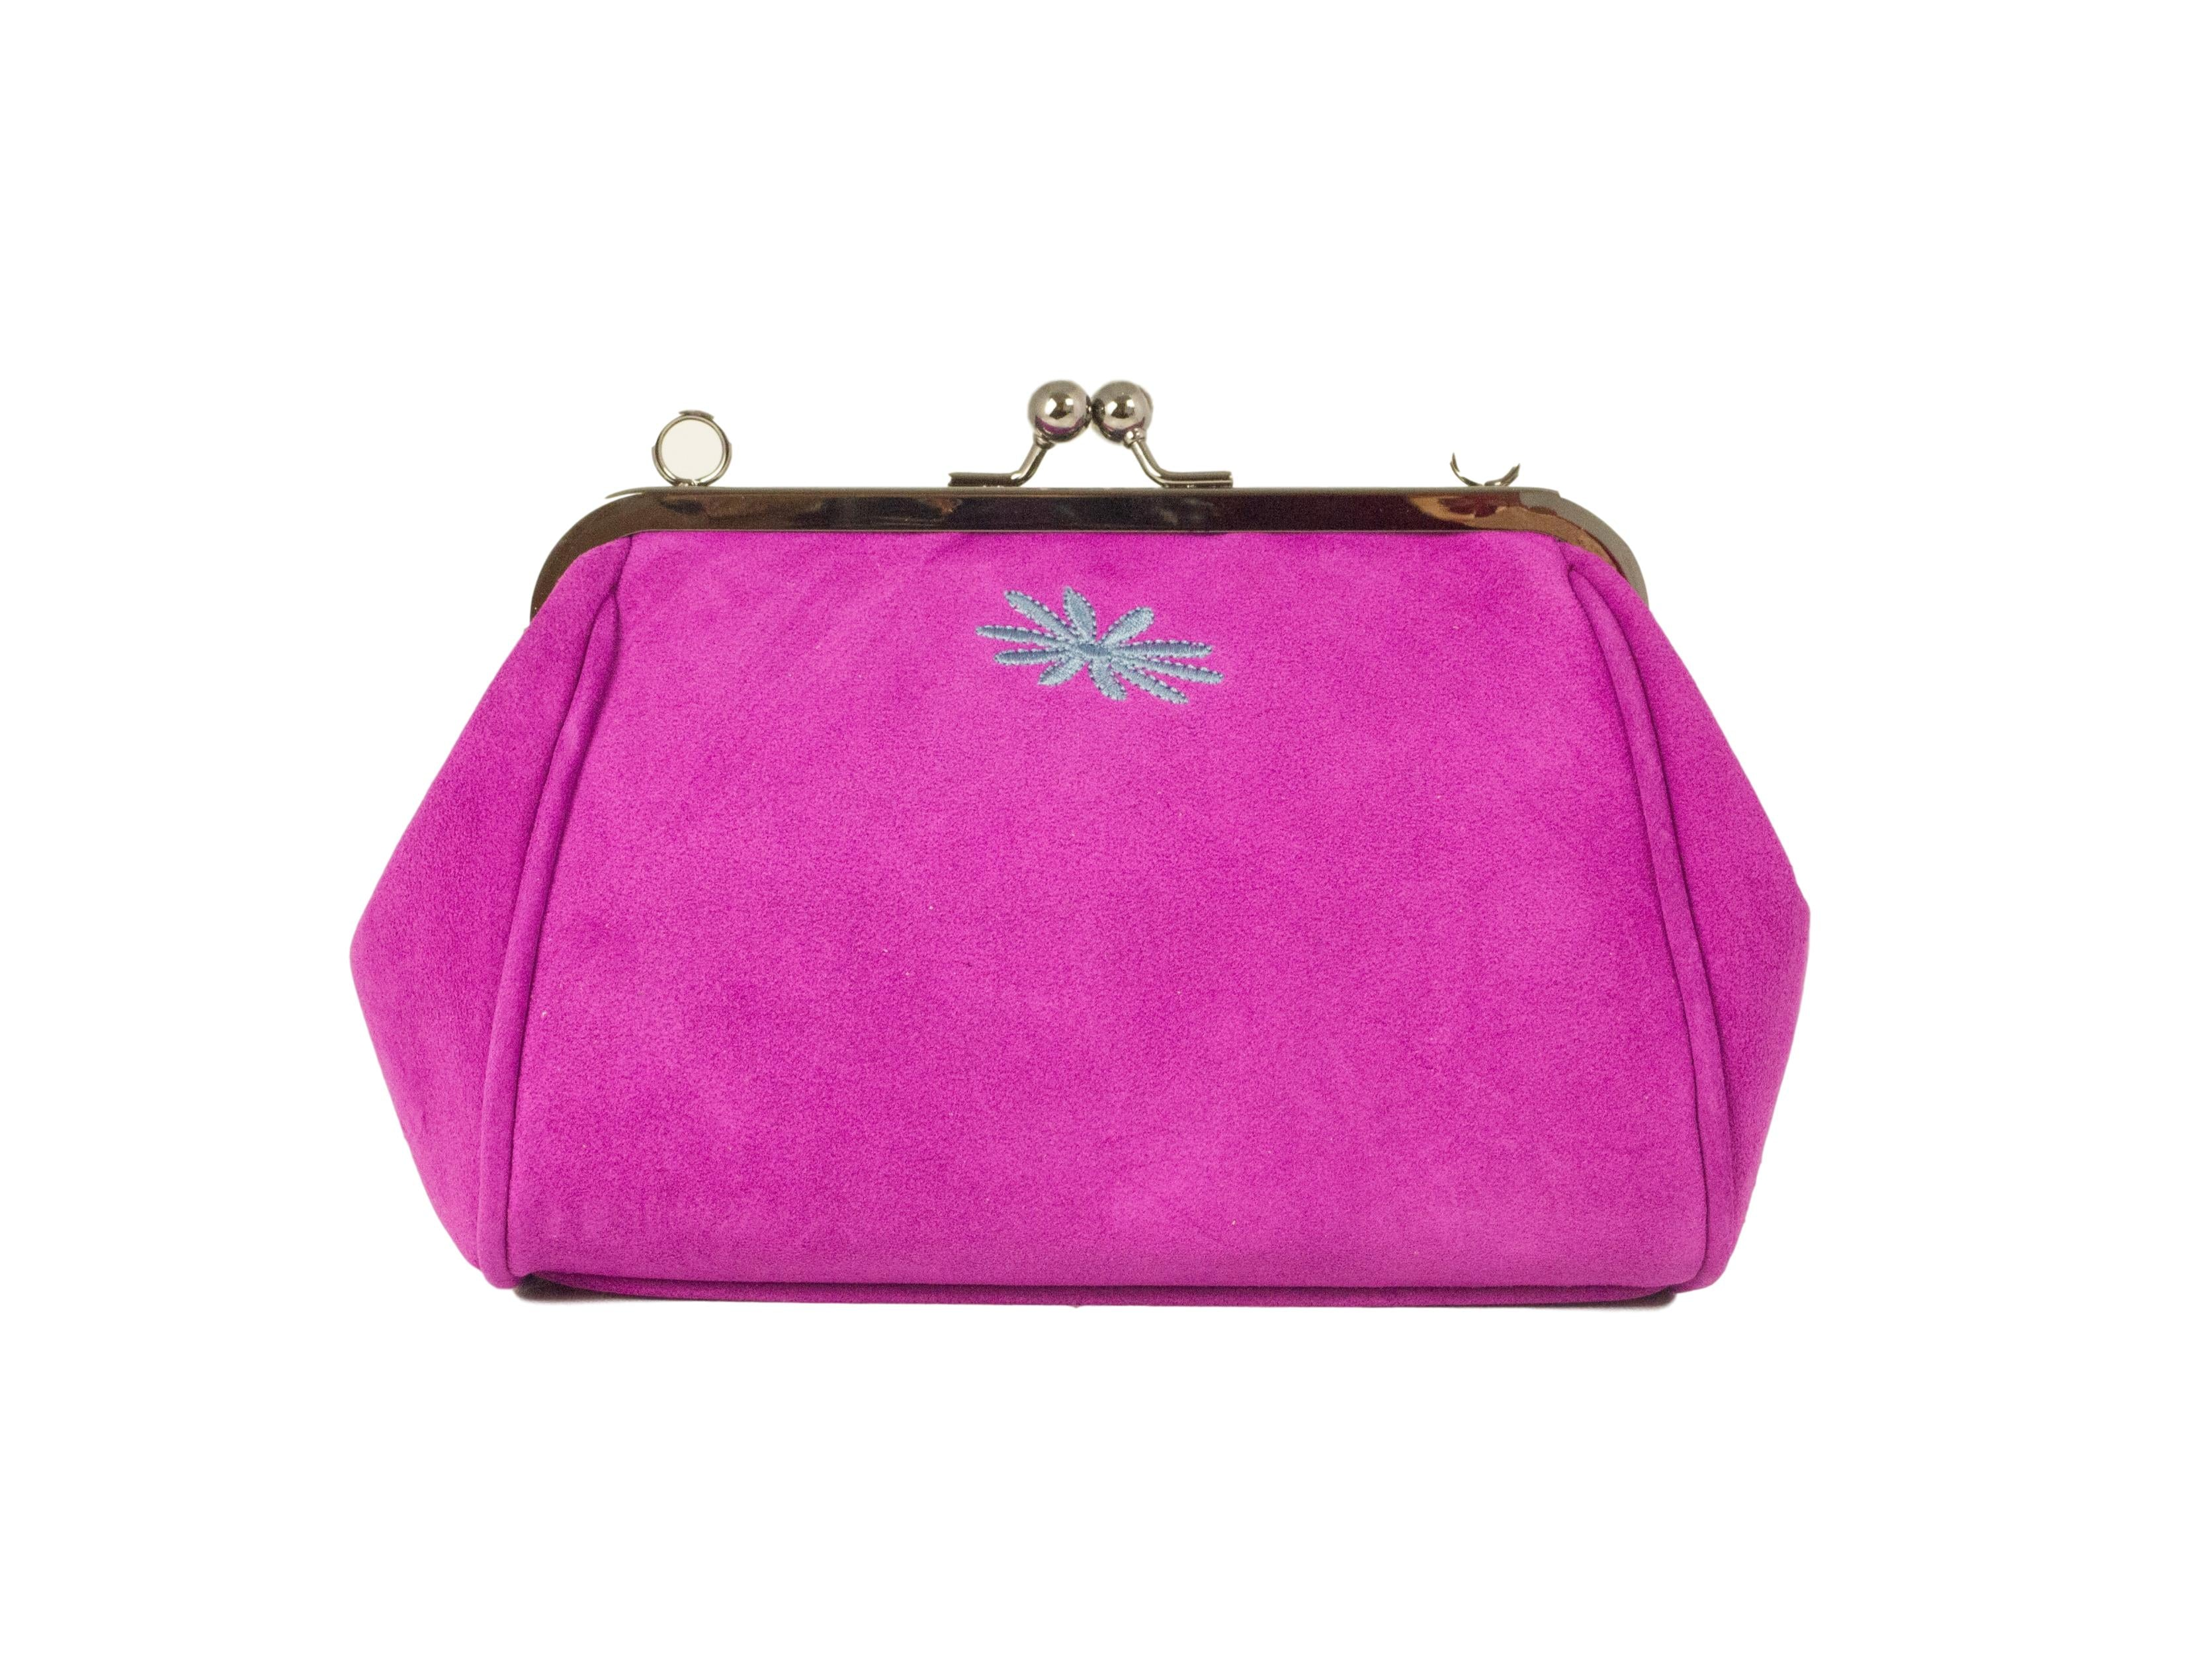 pink suede leather purse style clutch bag